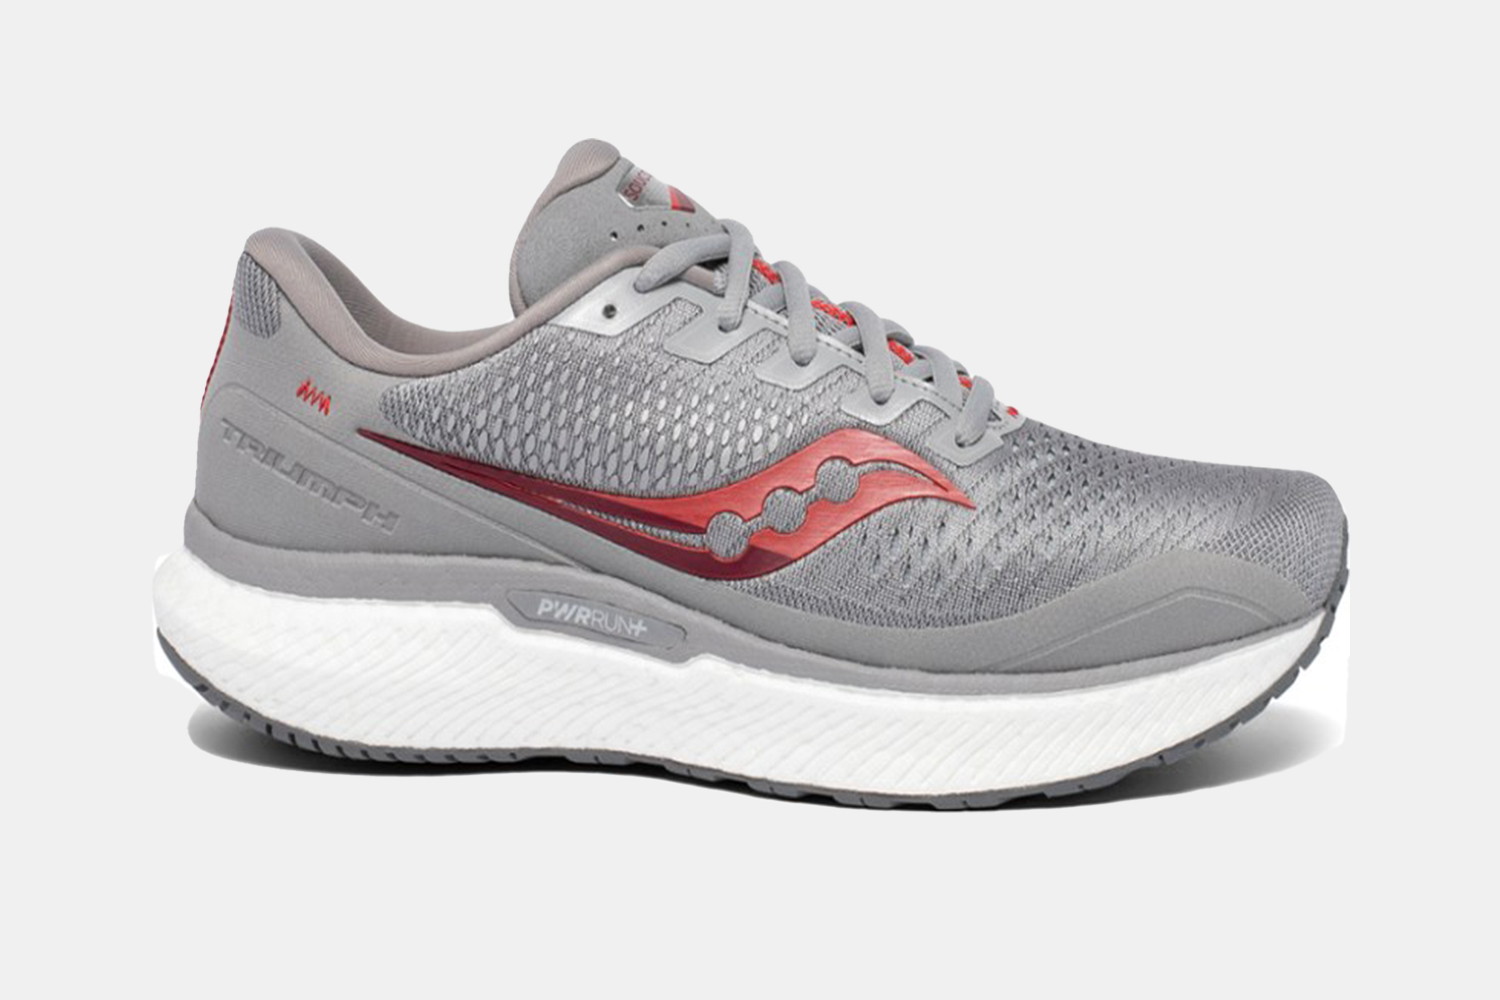 a pair of grey running shoes